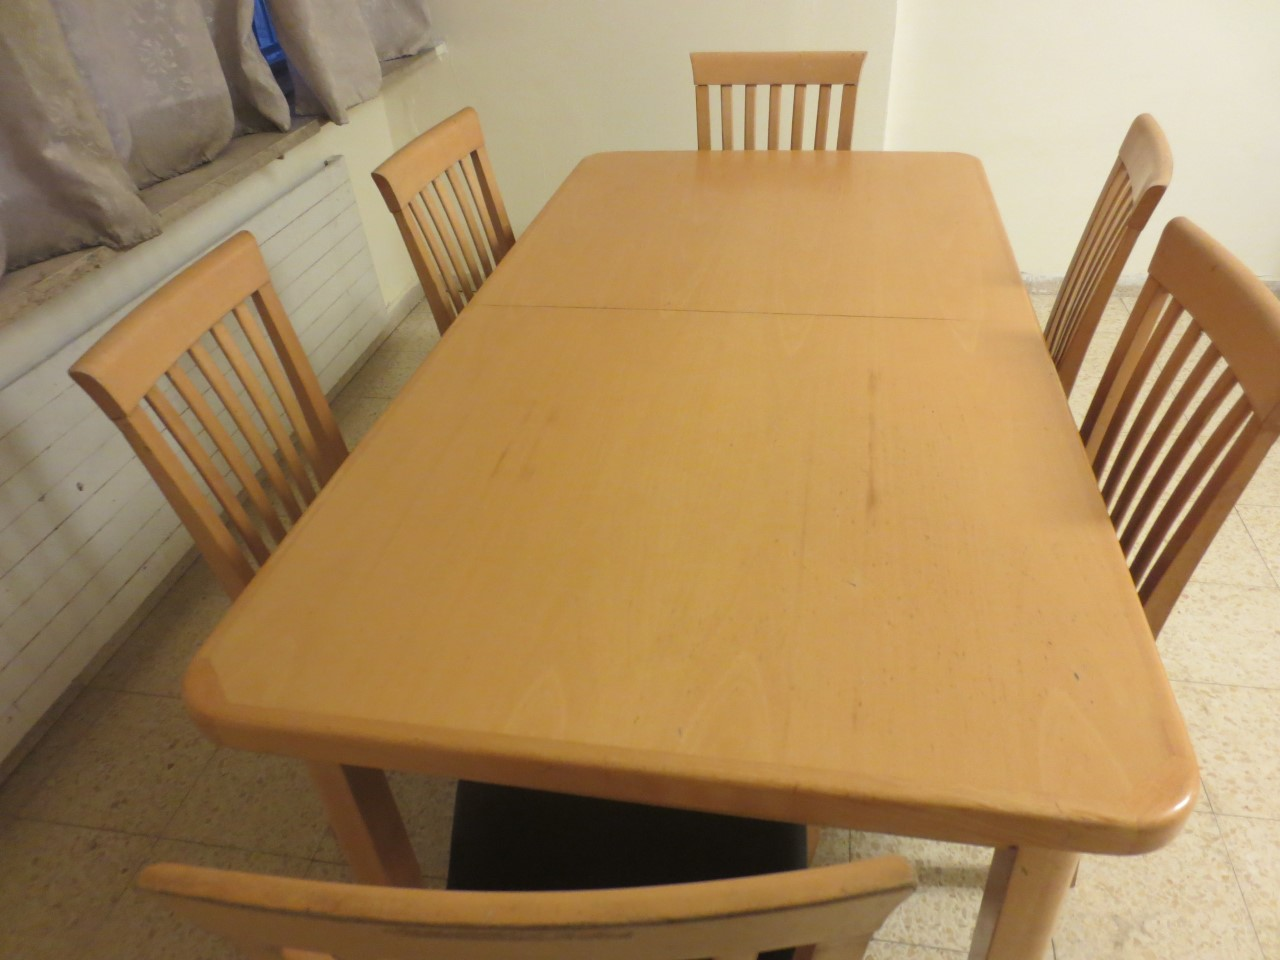 Marvelous 2Nd Hand Furniture Highest Quality Lowest Prices Email Machost Co Dining Chair Design Ideas Machostcouk